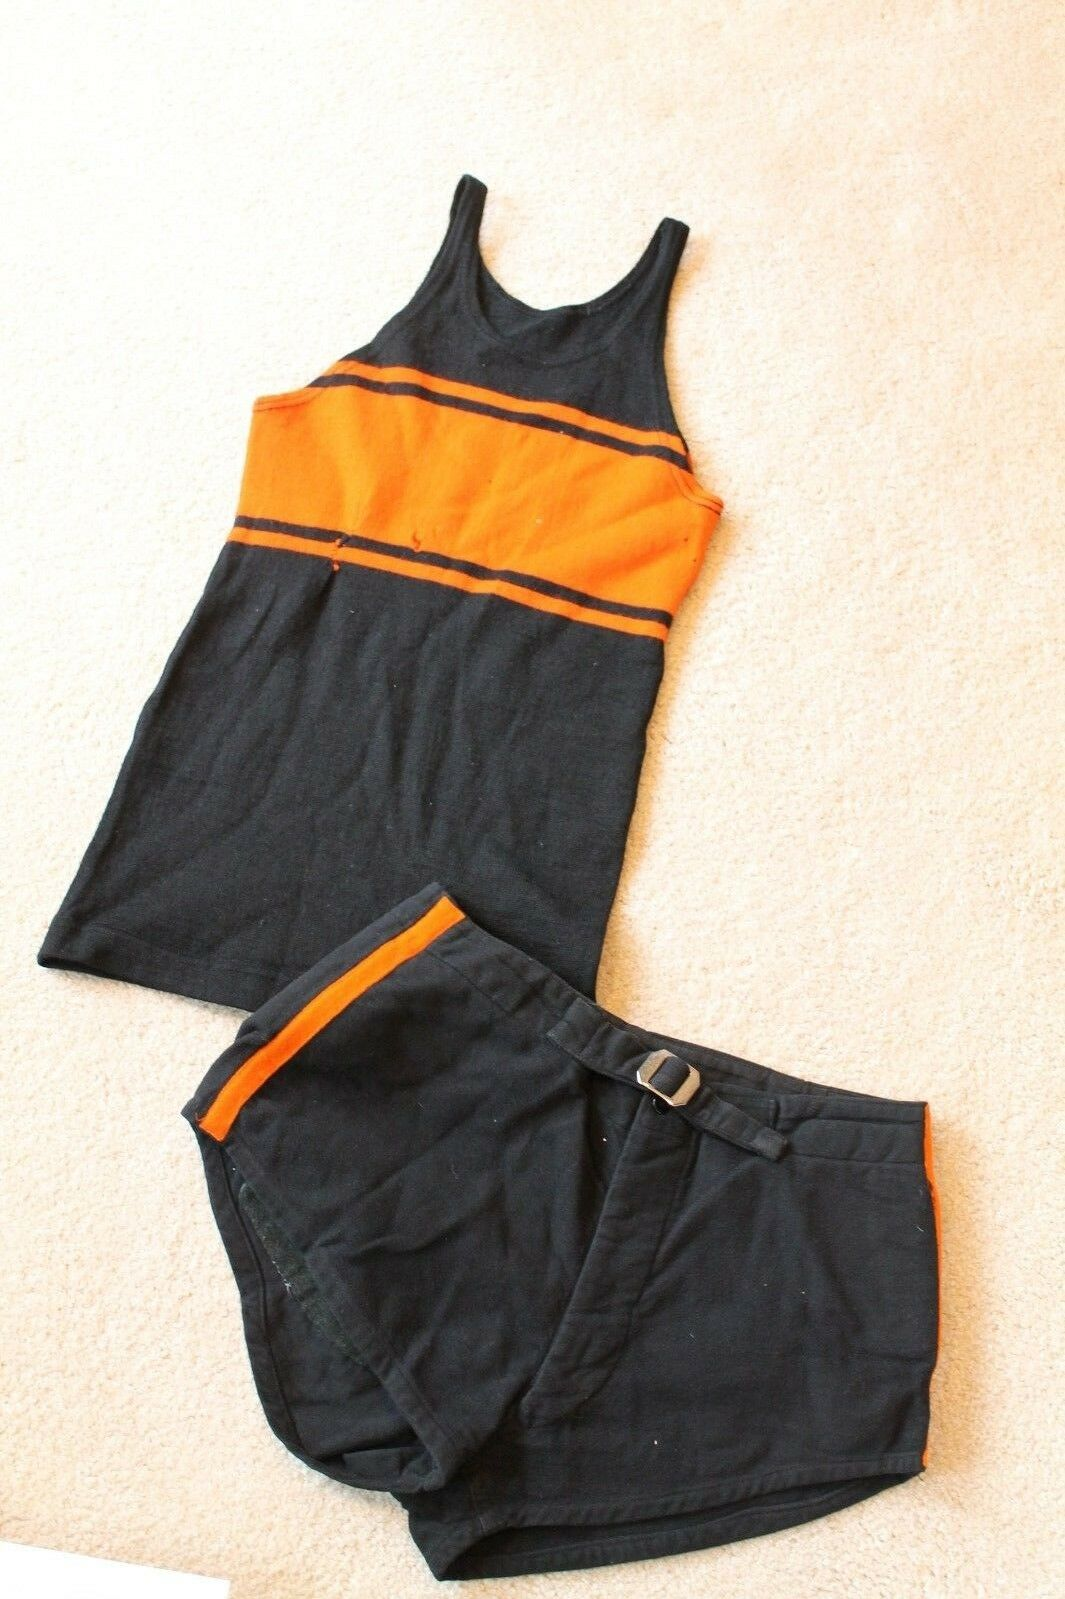 Spectacular Vintage 1920-30s Princeton Tigers Maillot de Football Uniform